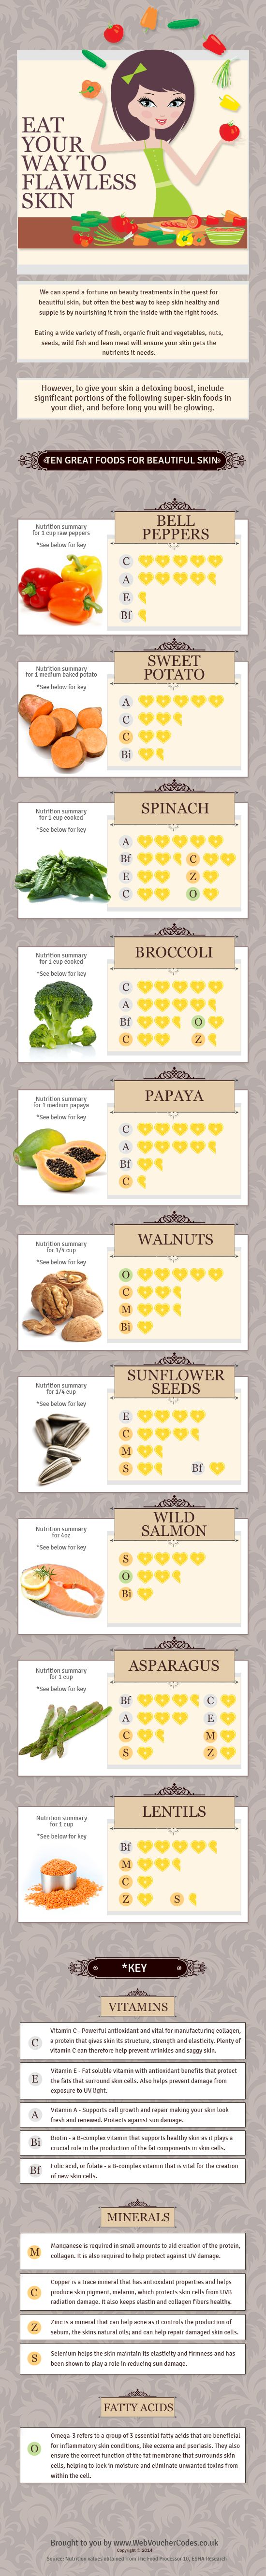 Skincare : Top Ten Foods For Healthy Skin ....... If you want to discover the secret to beautiful skin, these super skin-nourishing foods are packed full of nutrients for healthy skin ...... Healthy Skin is Beautiful Skin! kur <3